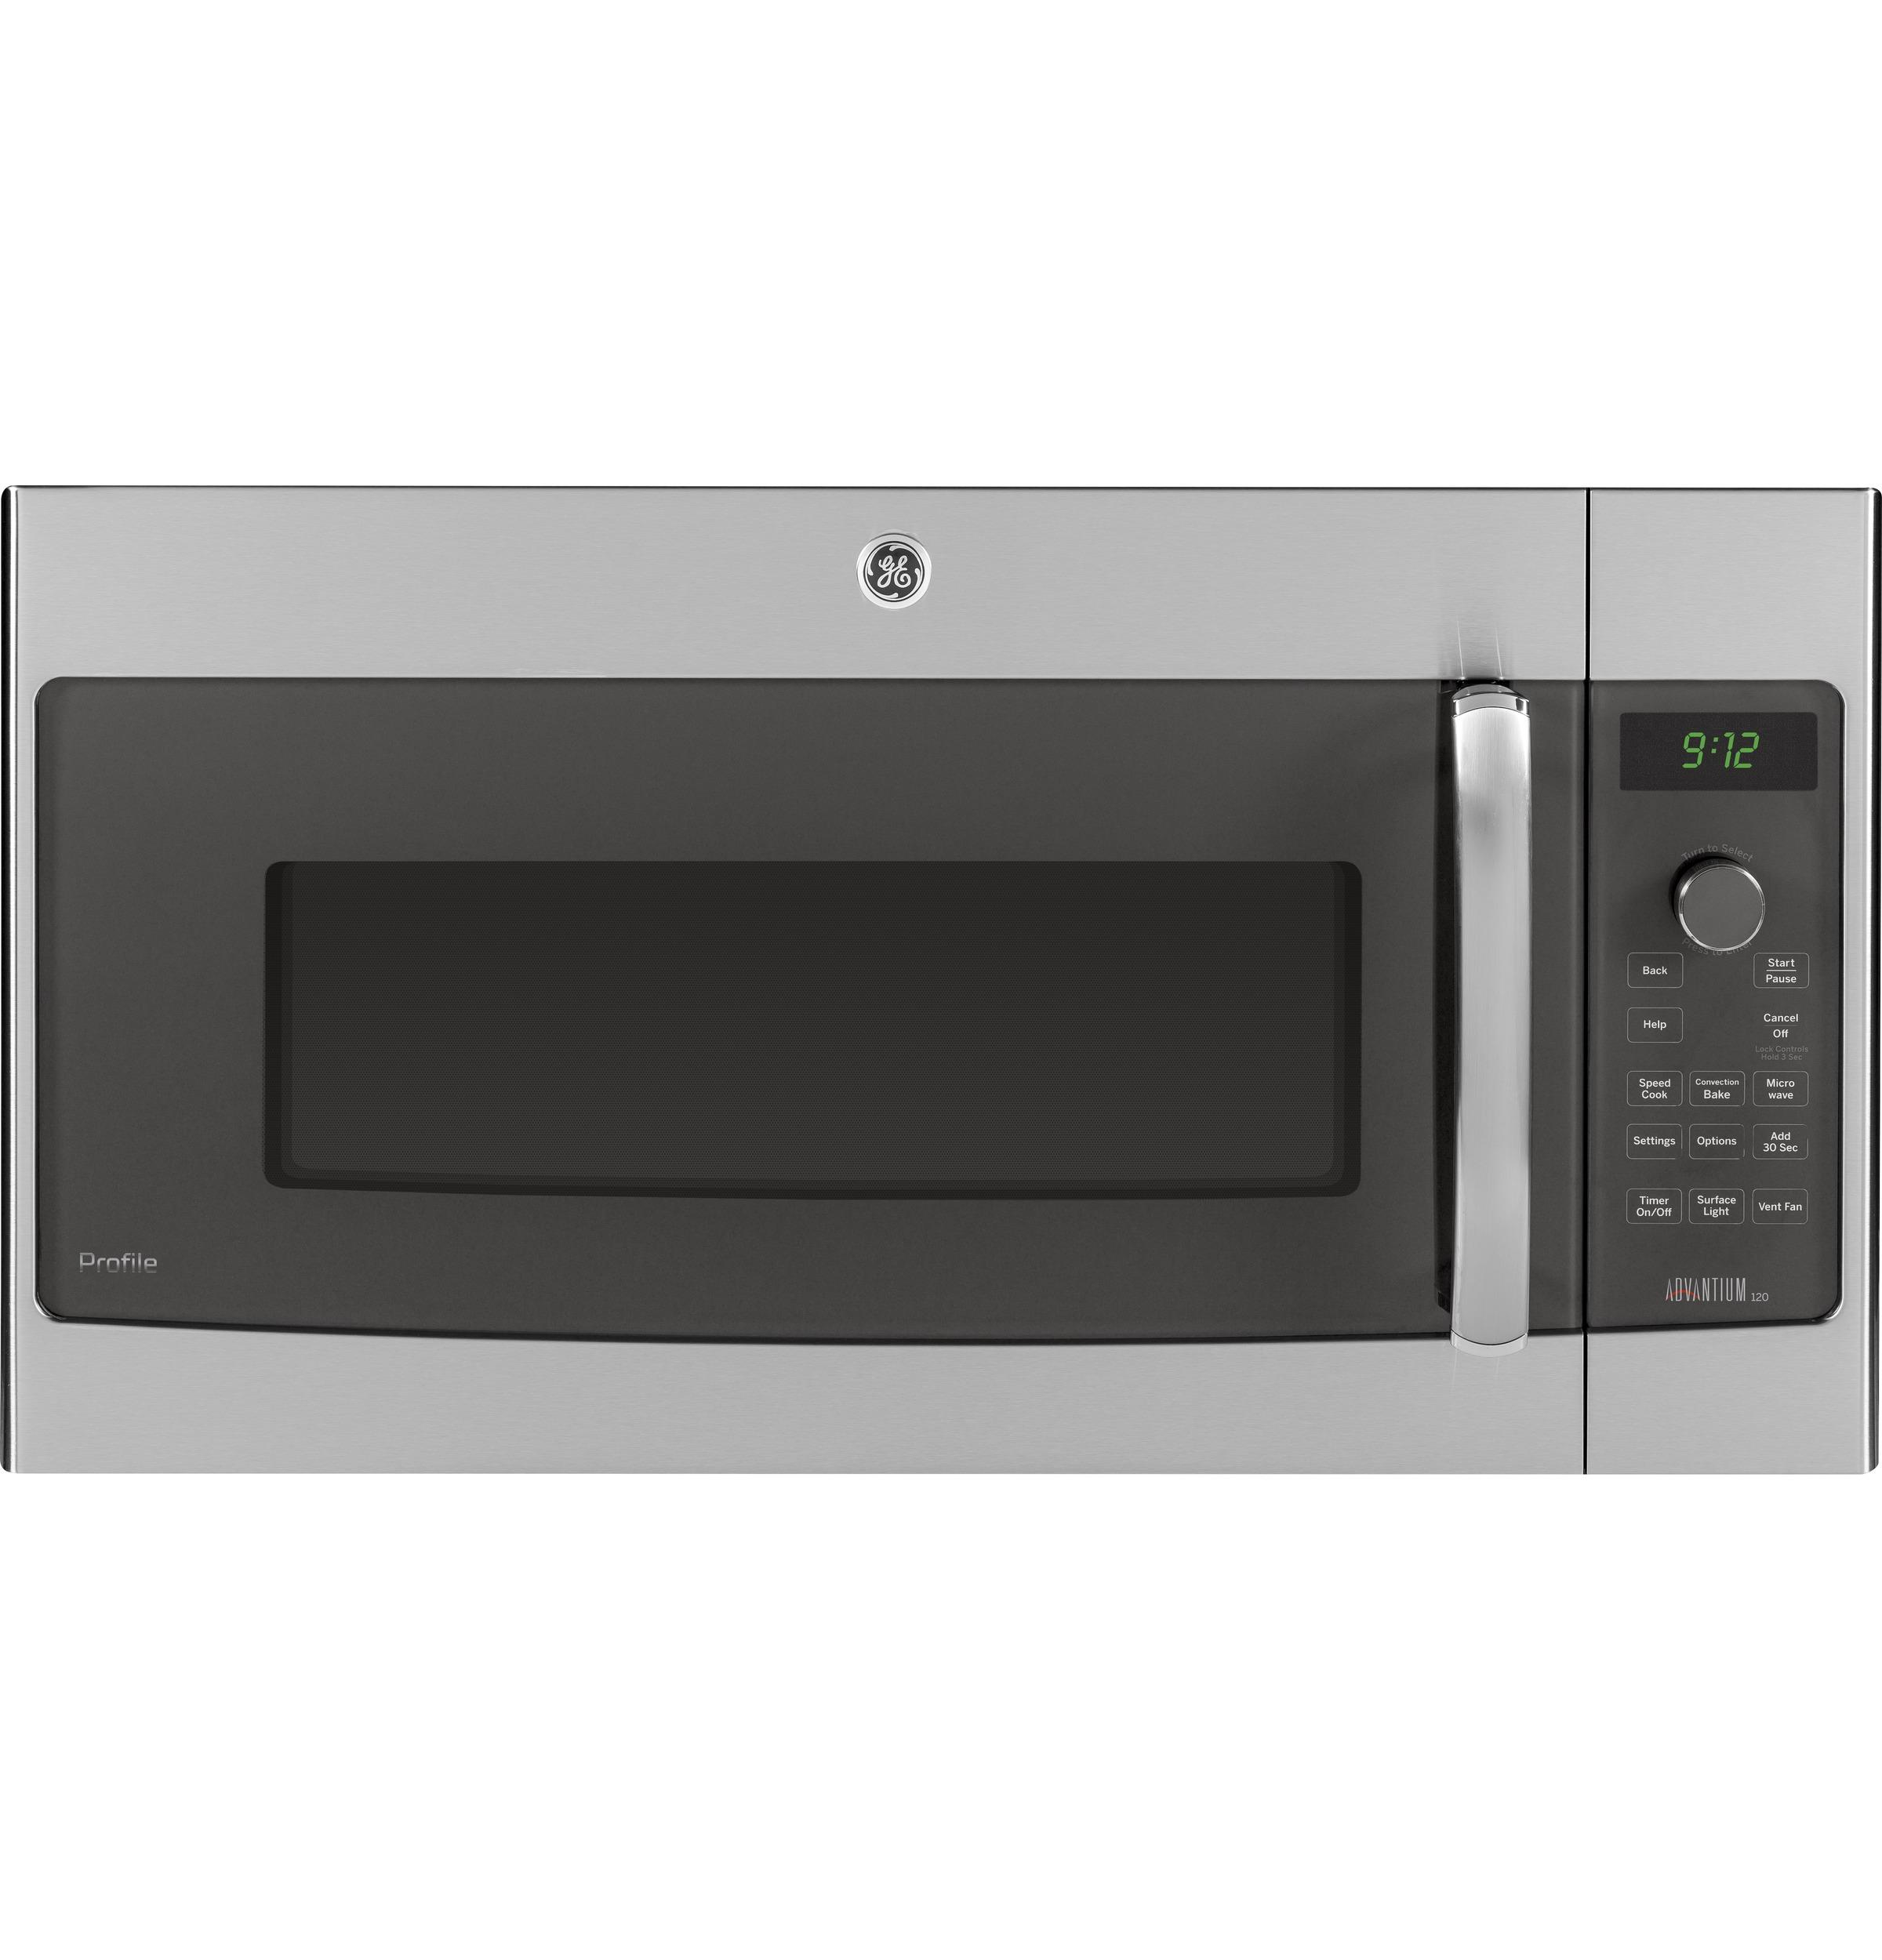 GE APPLIANCES PSA9120SFSS